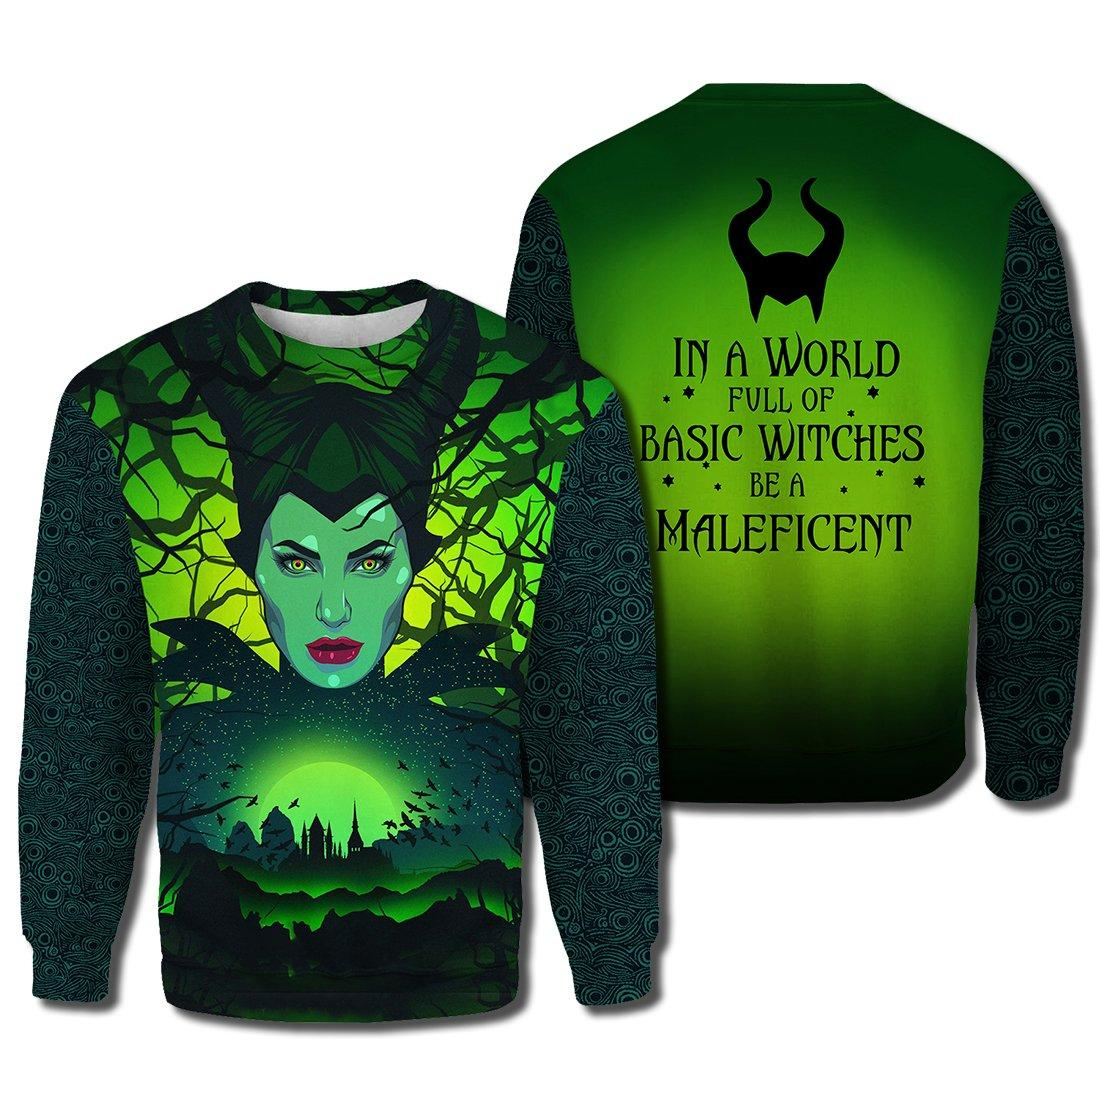 In a world full of basic witches be a maleficent 3d sweater